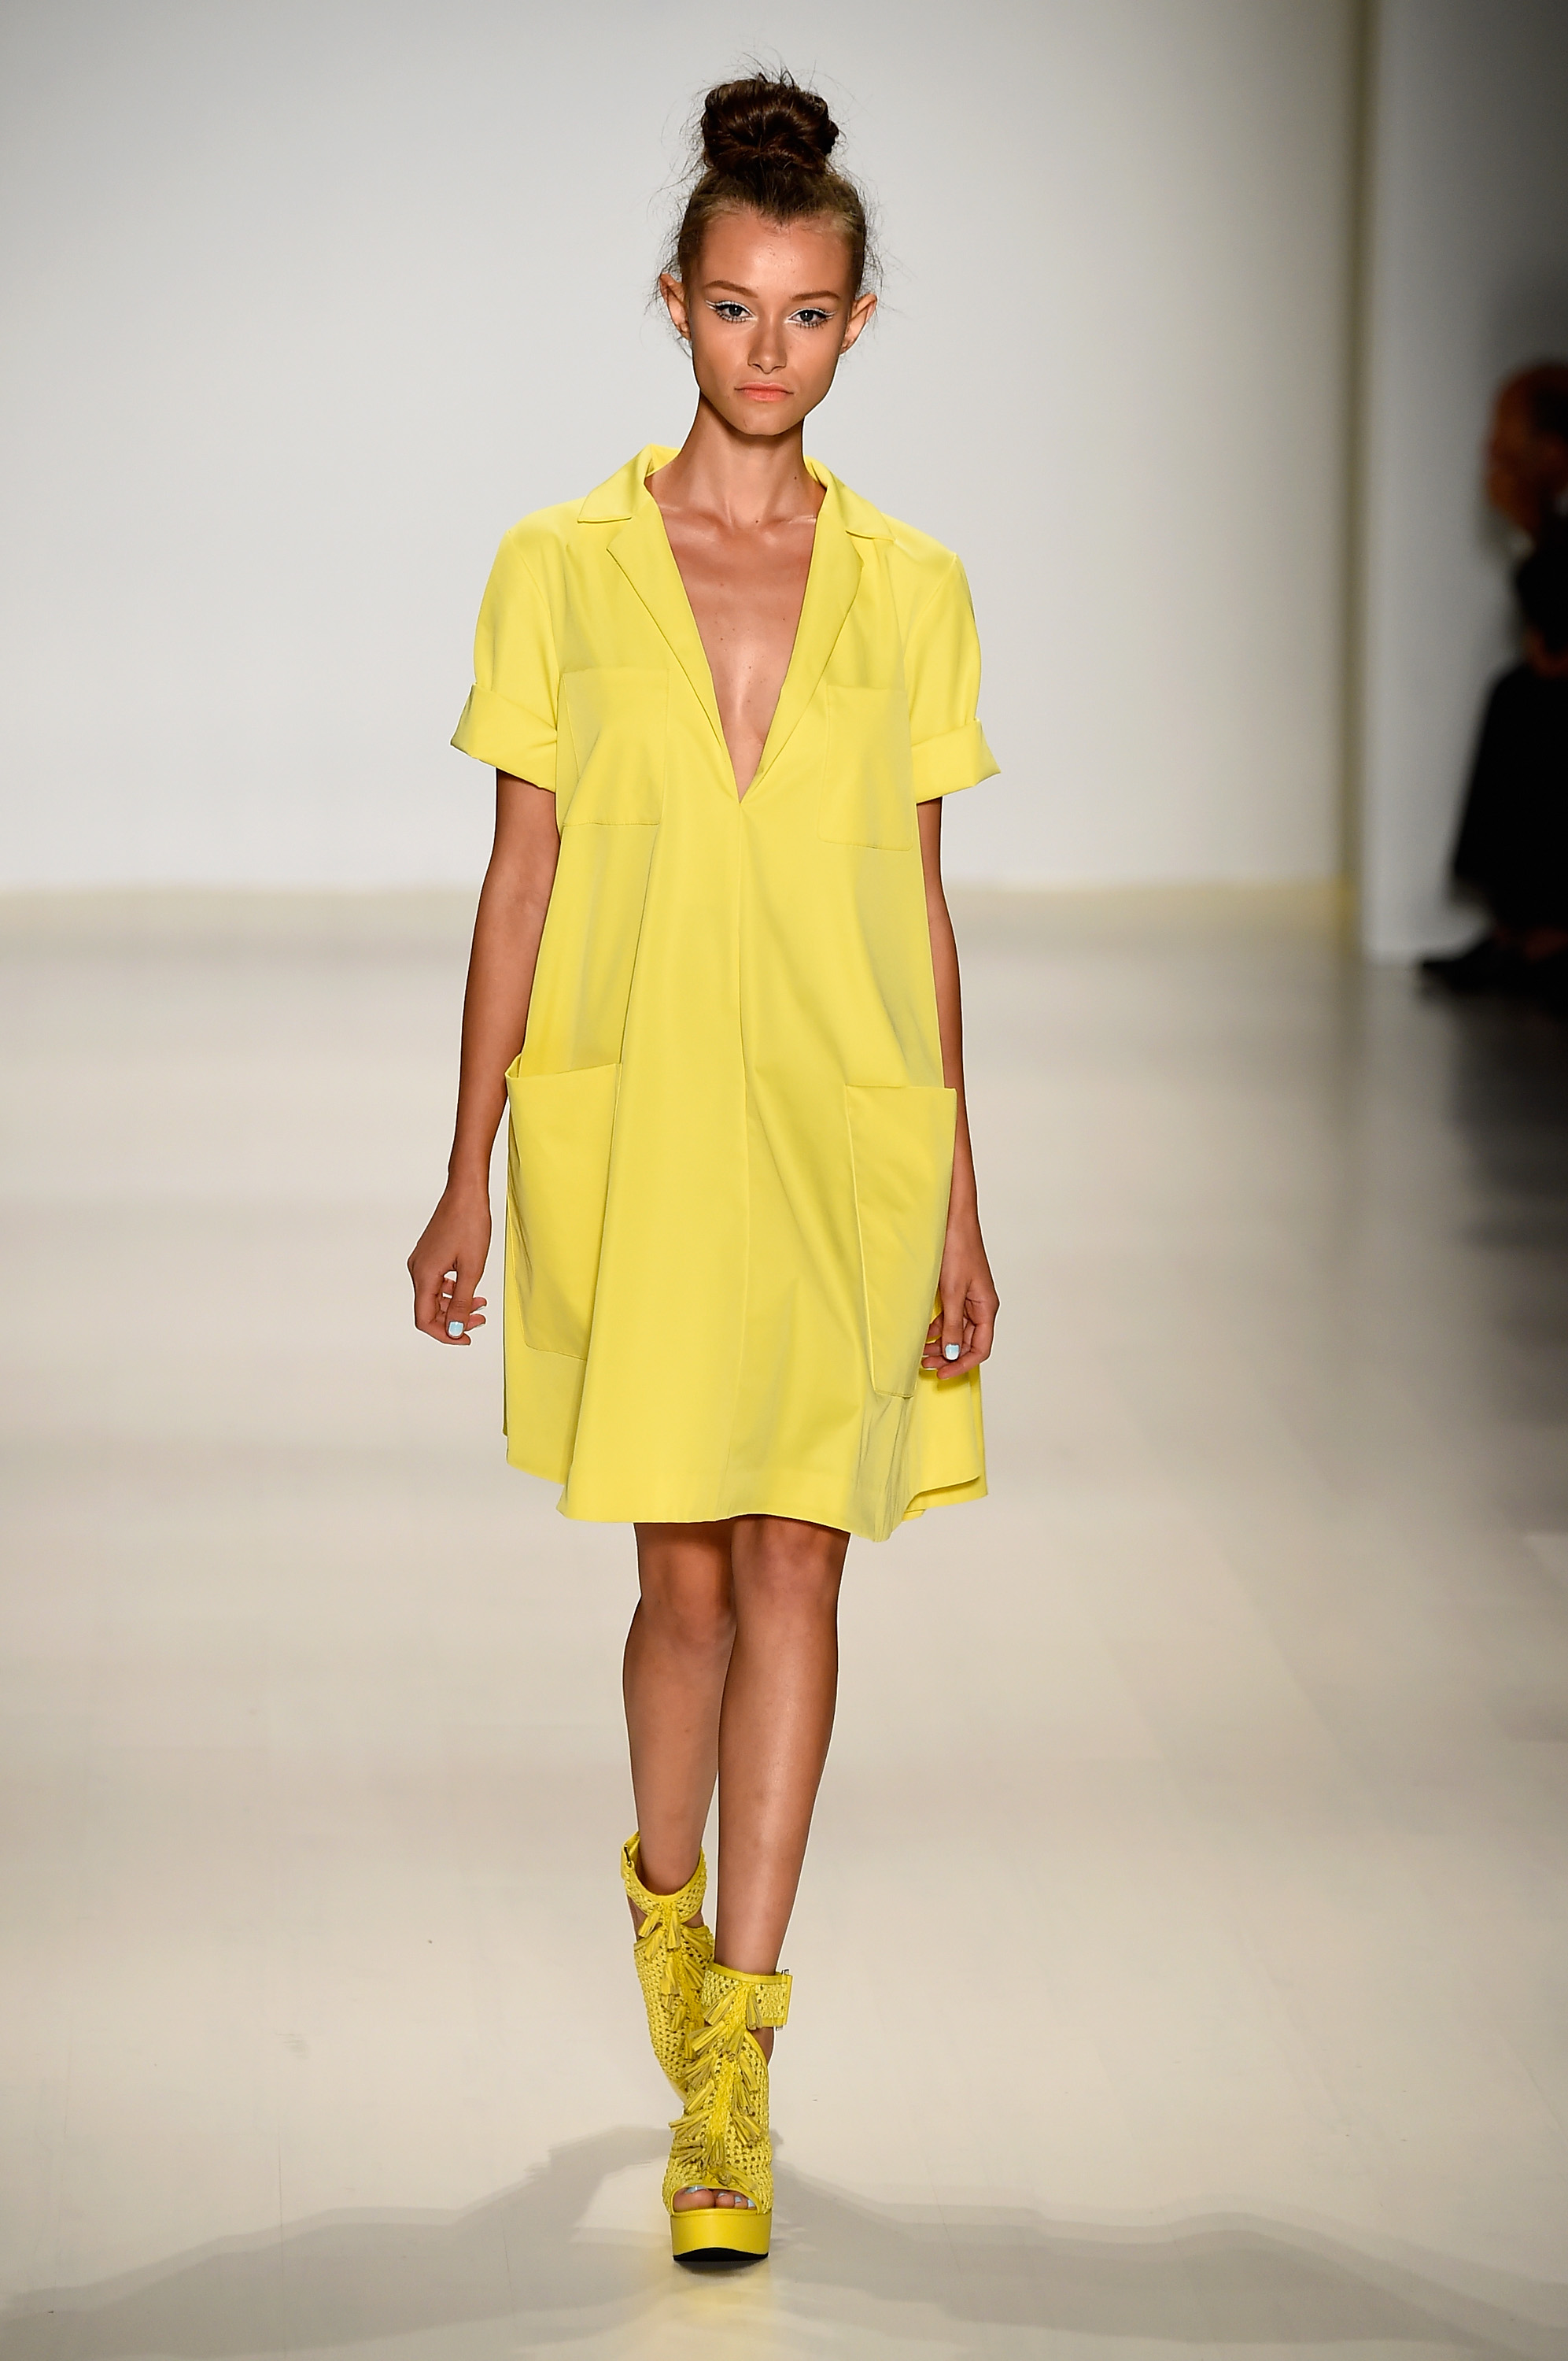 Mercedes-Benz Fashion Week Spring 2015 - Official Coverage - Best Of Runway Day 4